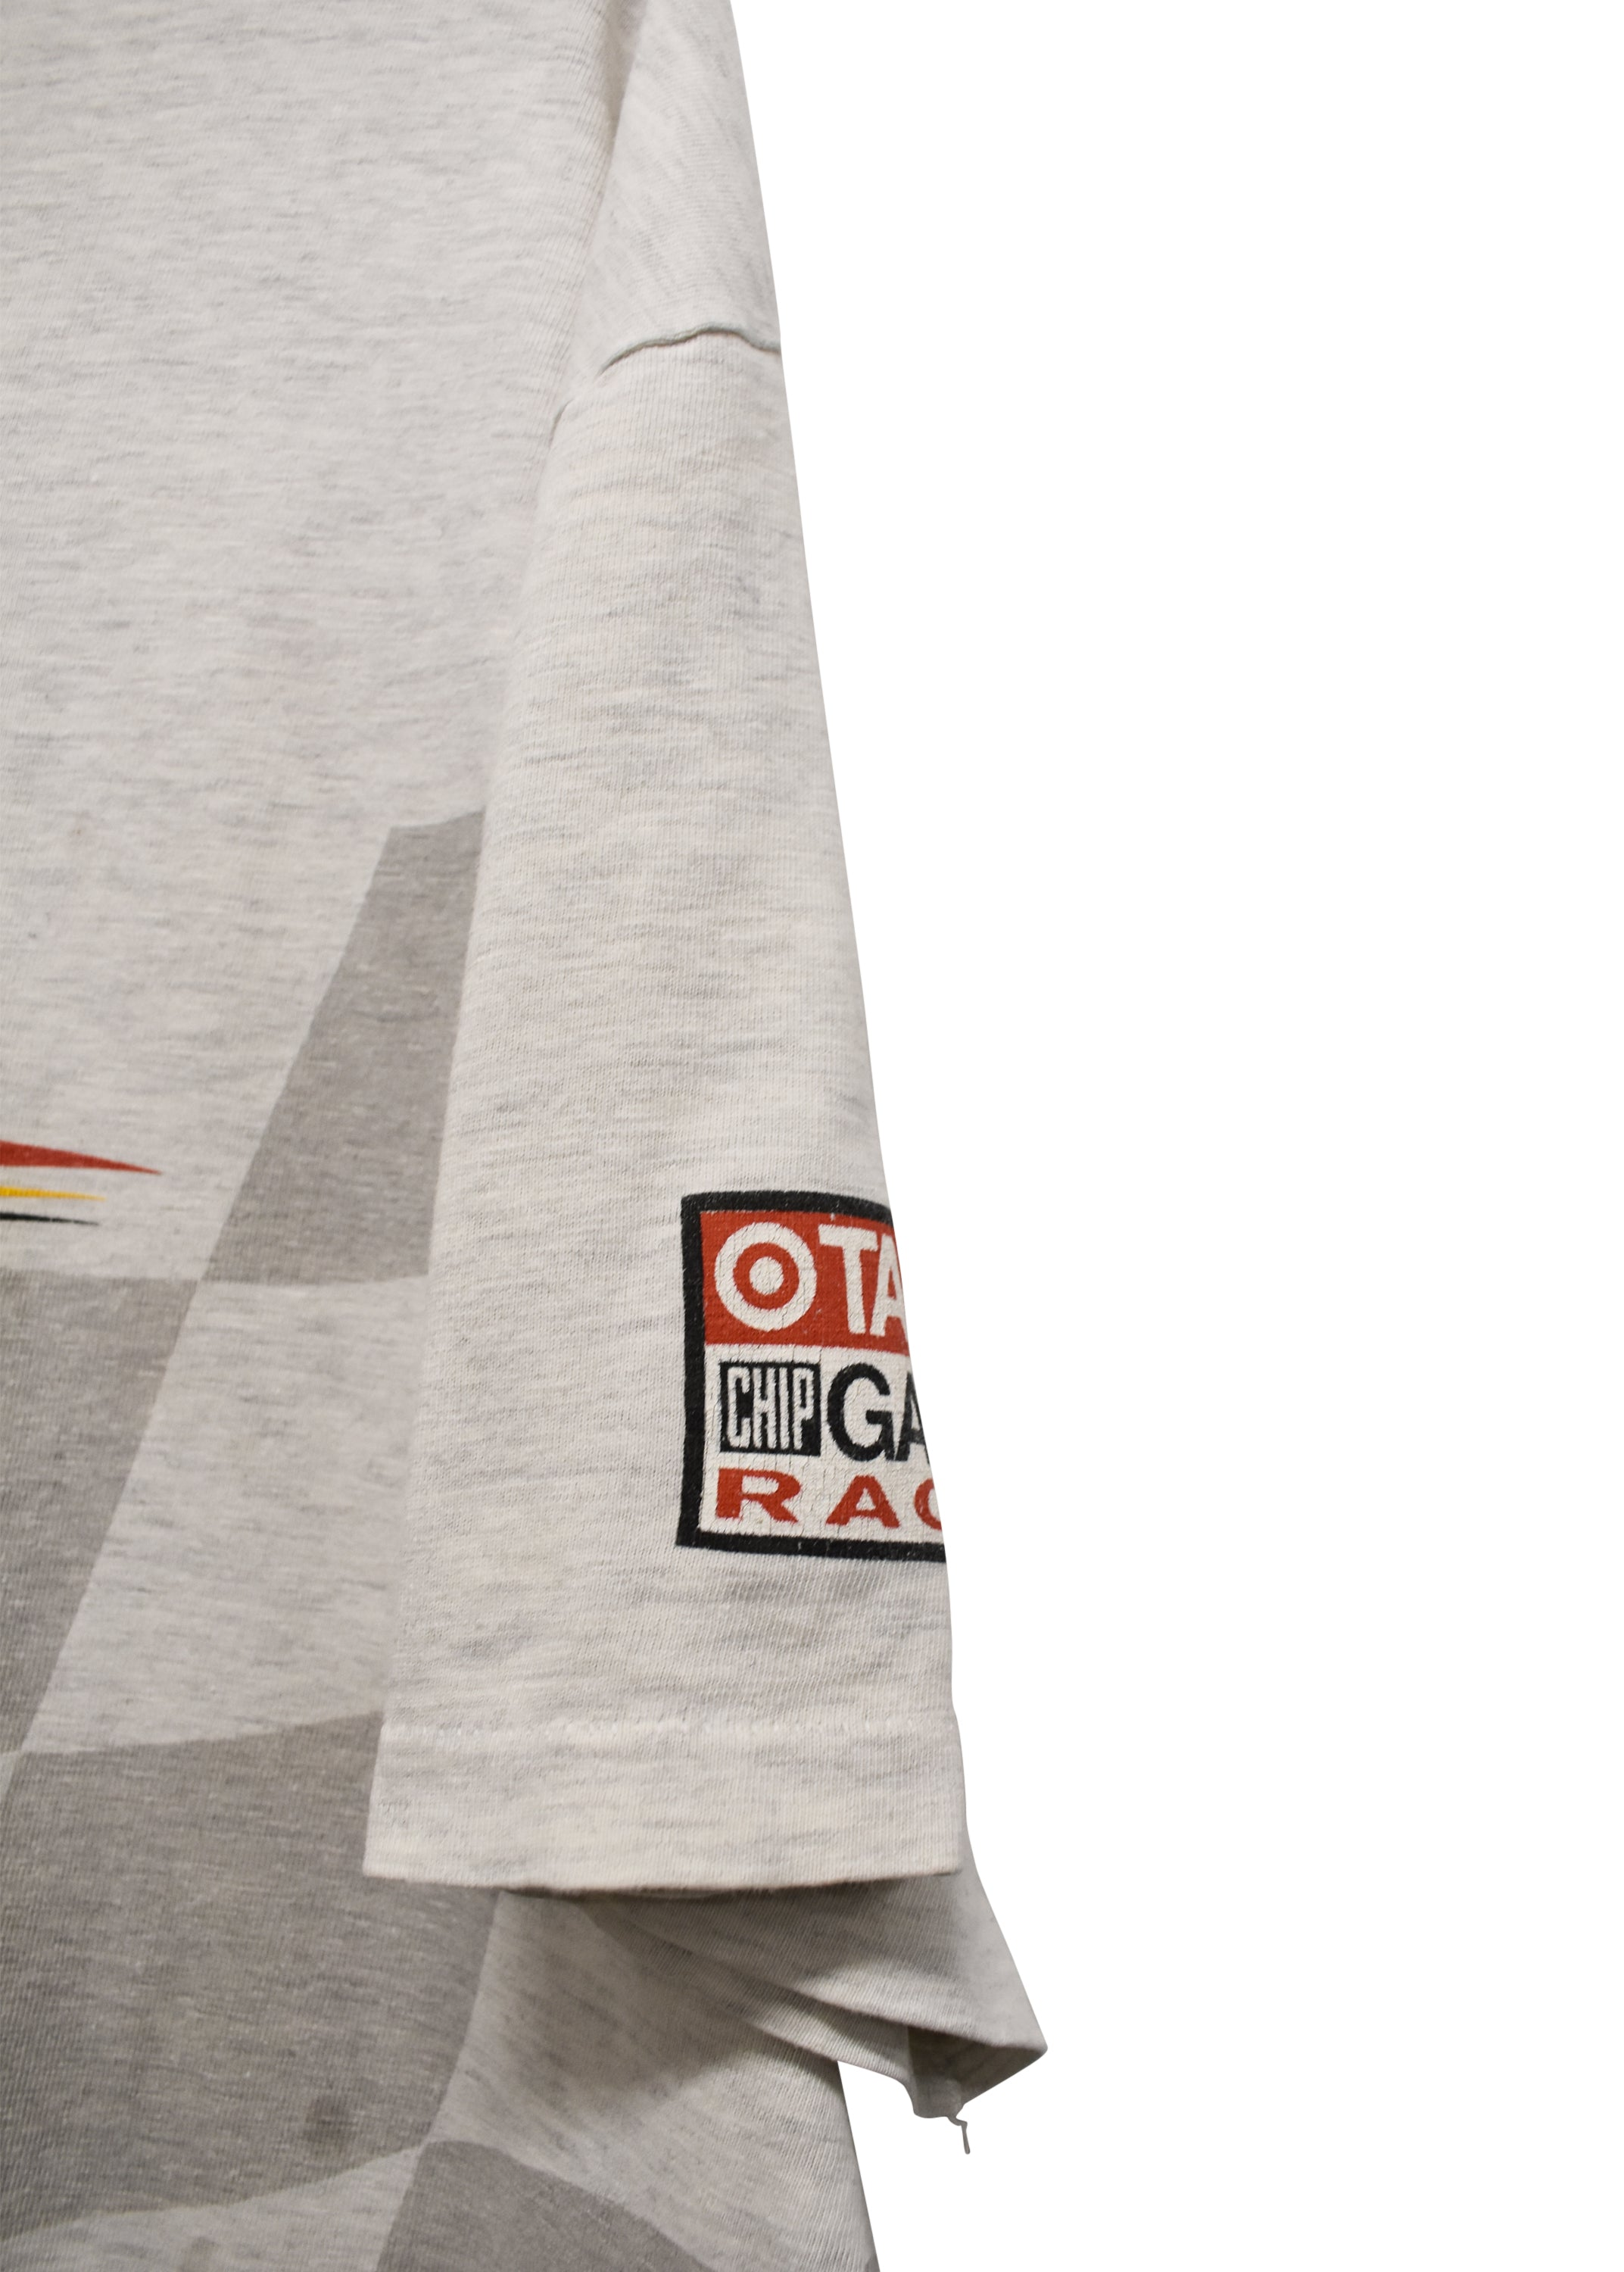 STURGIS BIKE WEEK 2002 COLLECTOR TEE